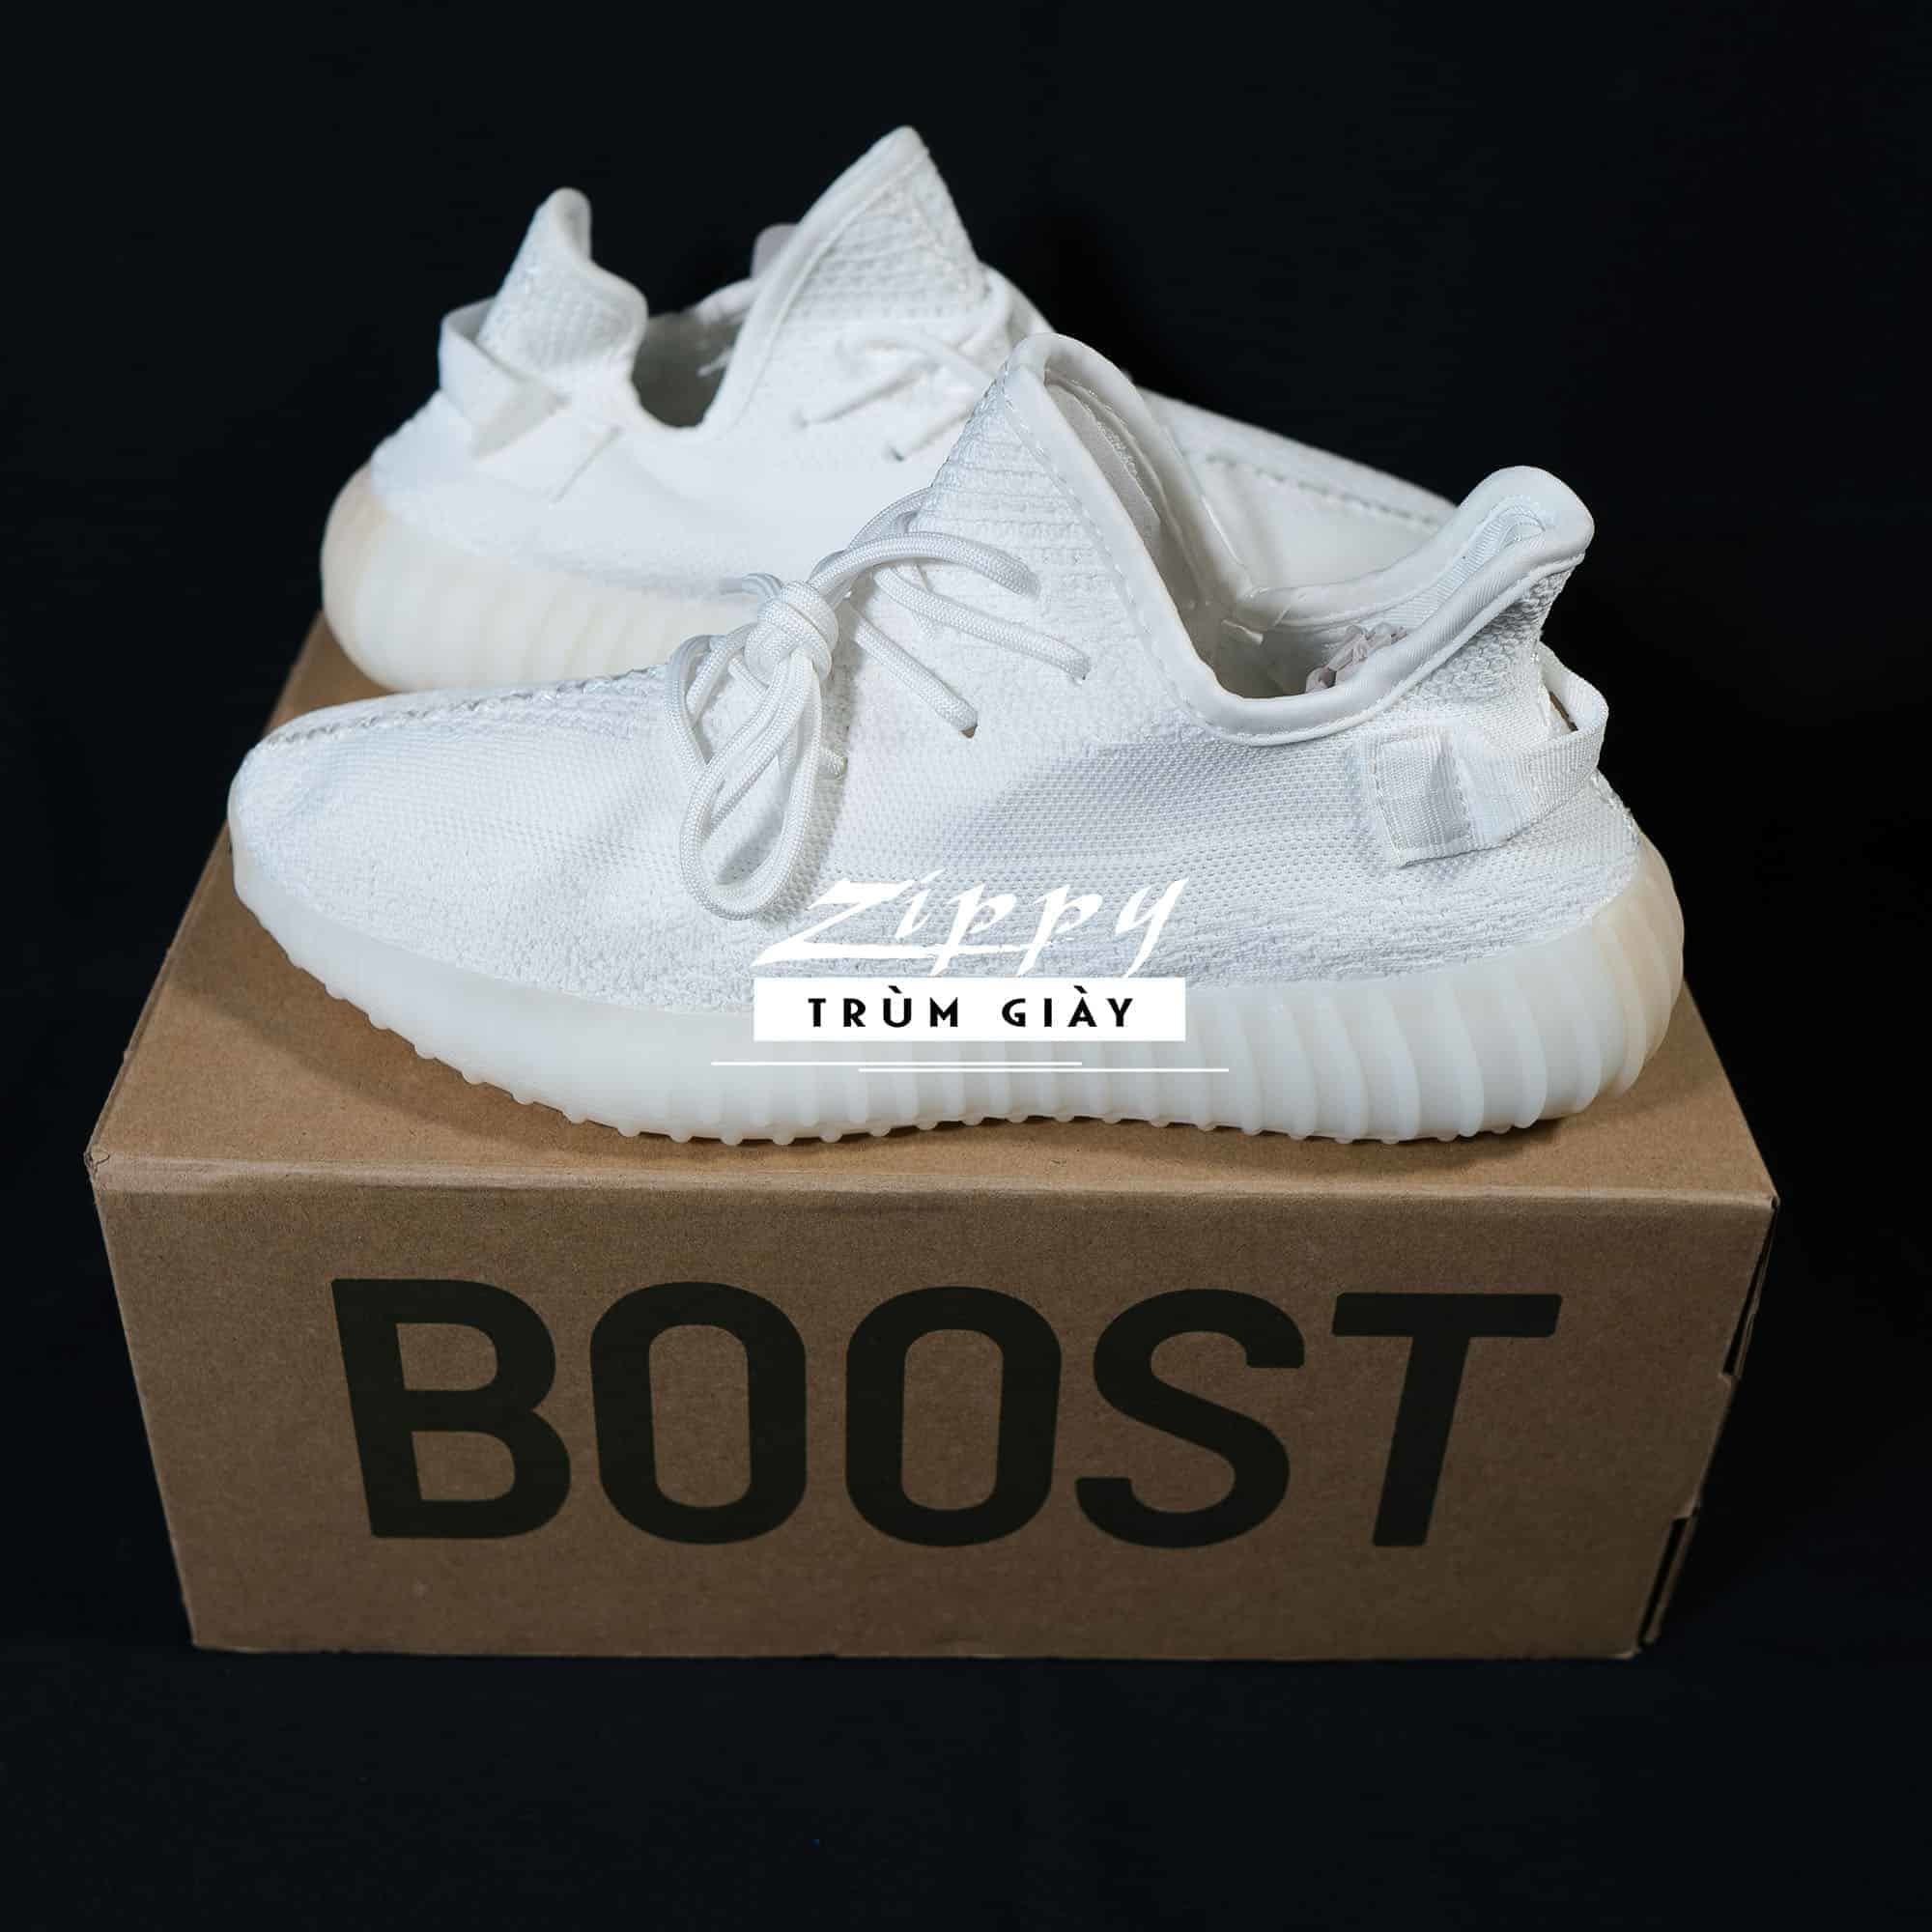 40d42c0192d72 Adidas Yeezy Boost 350 V2 Màu Cream White SF+Form REP – Zippy Giày ...